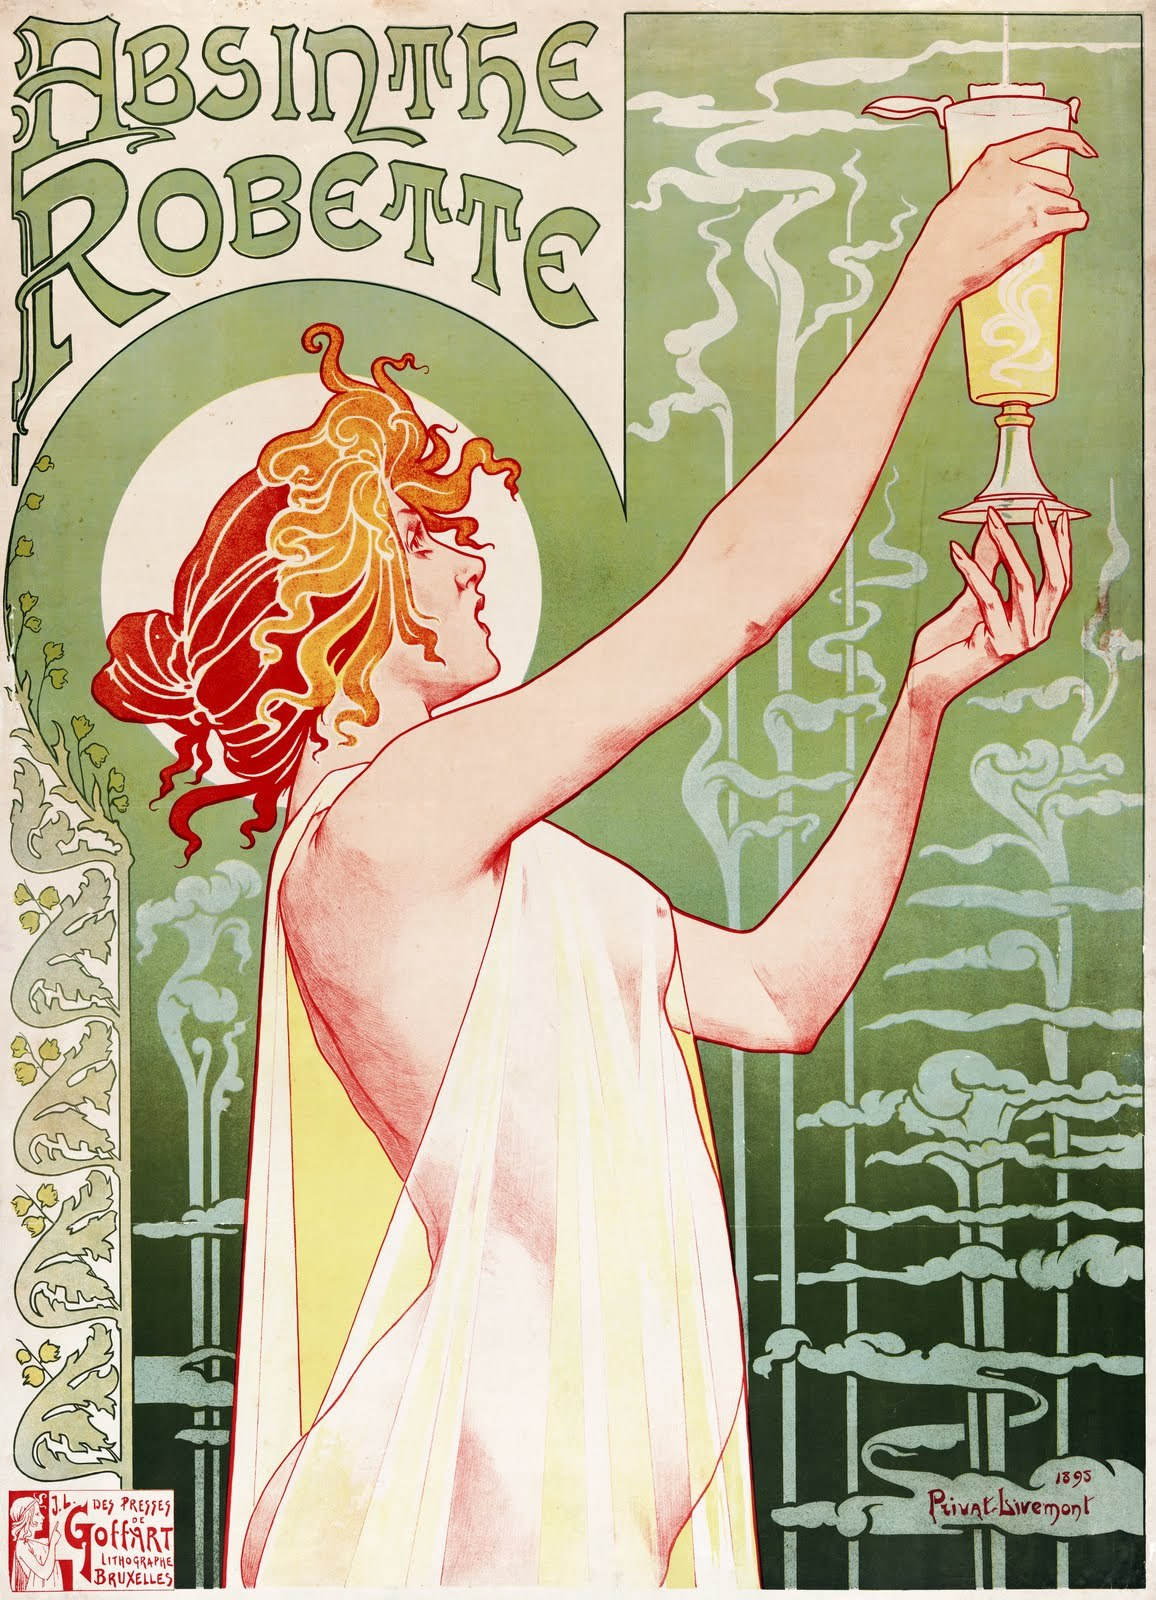 Invented absinthe, inspiring some of the finest European writers, artists, and musicians of the 19th century. (Mère Henriod/Mother Henriot)